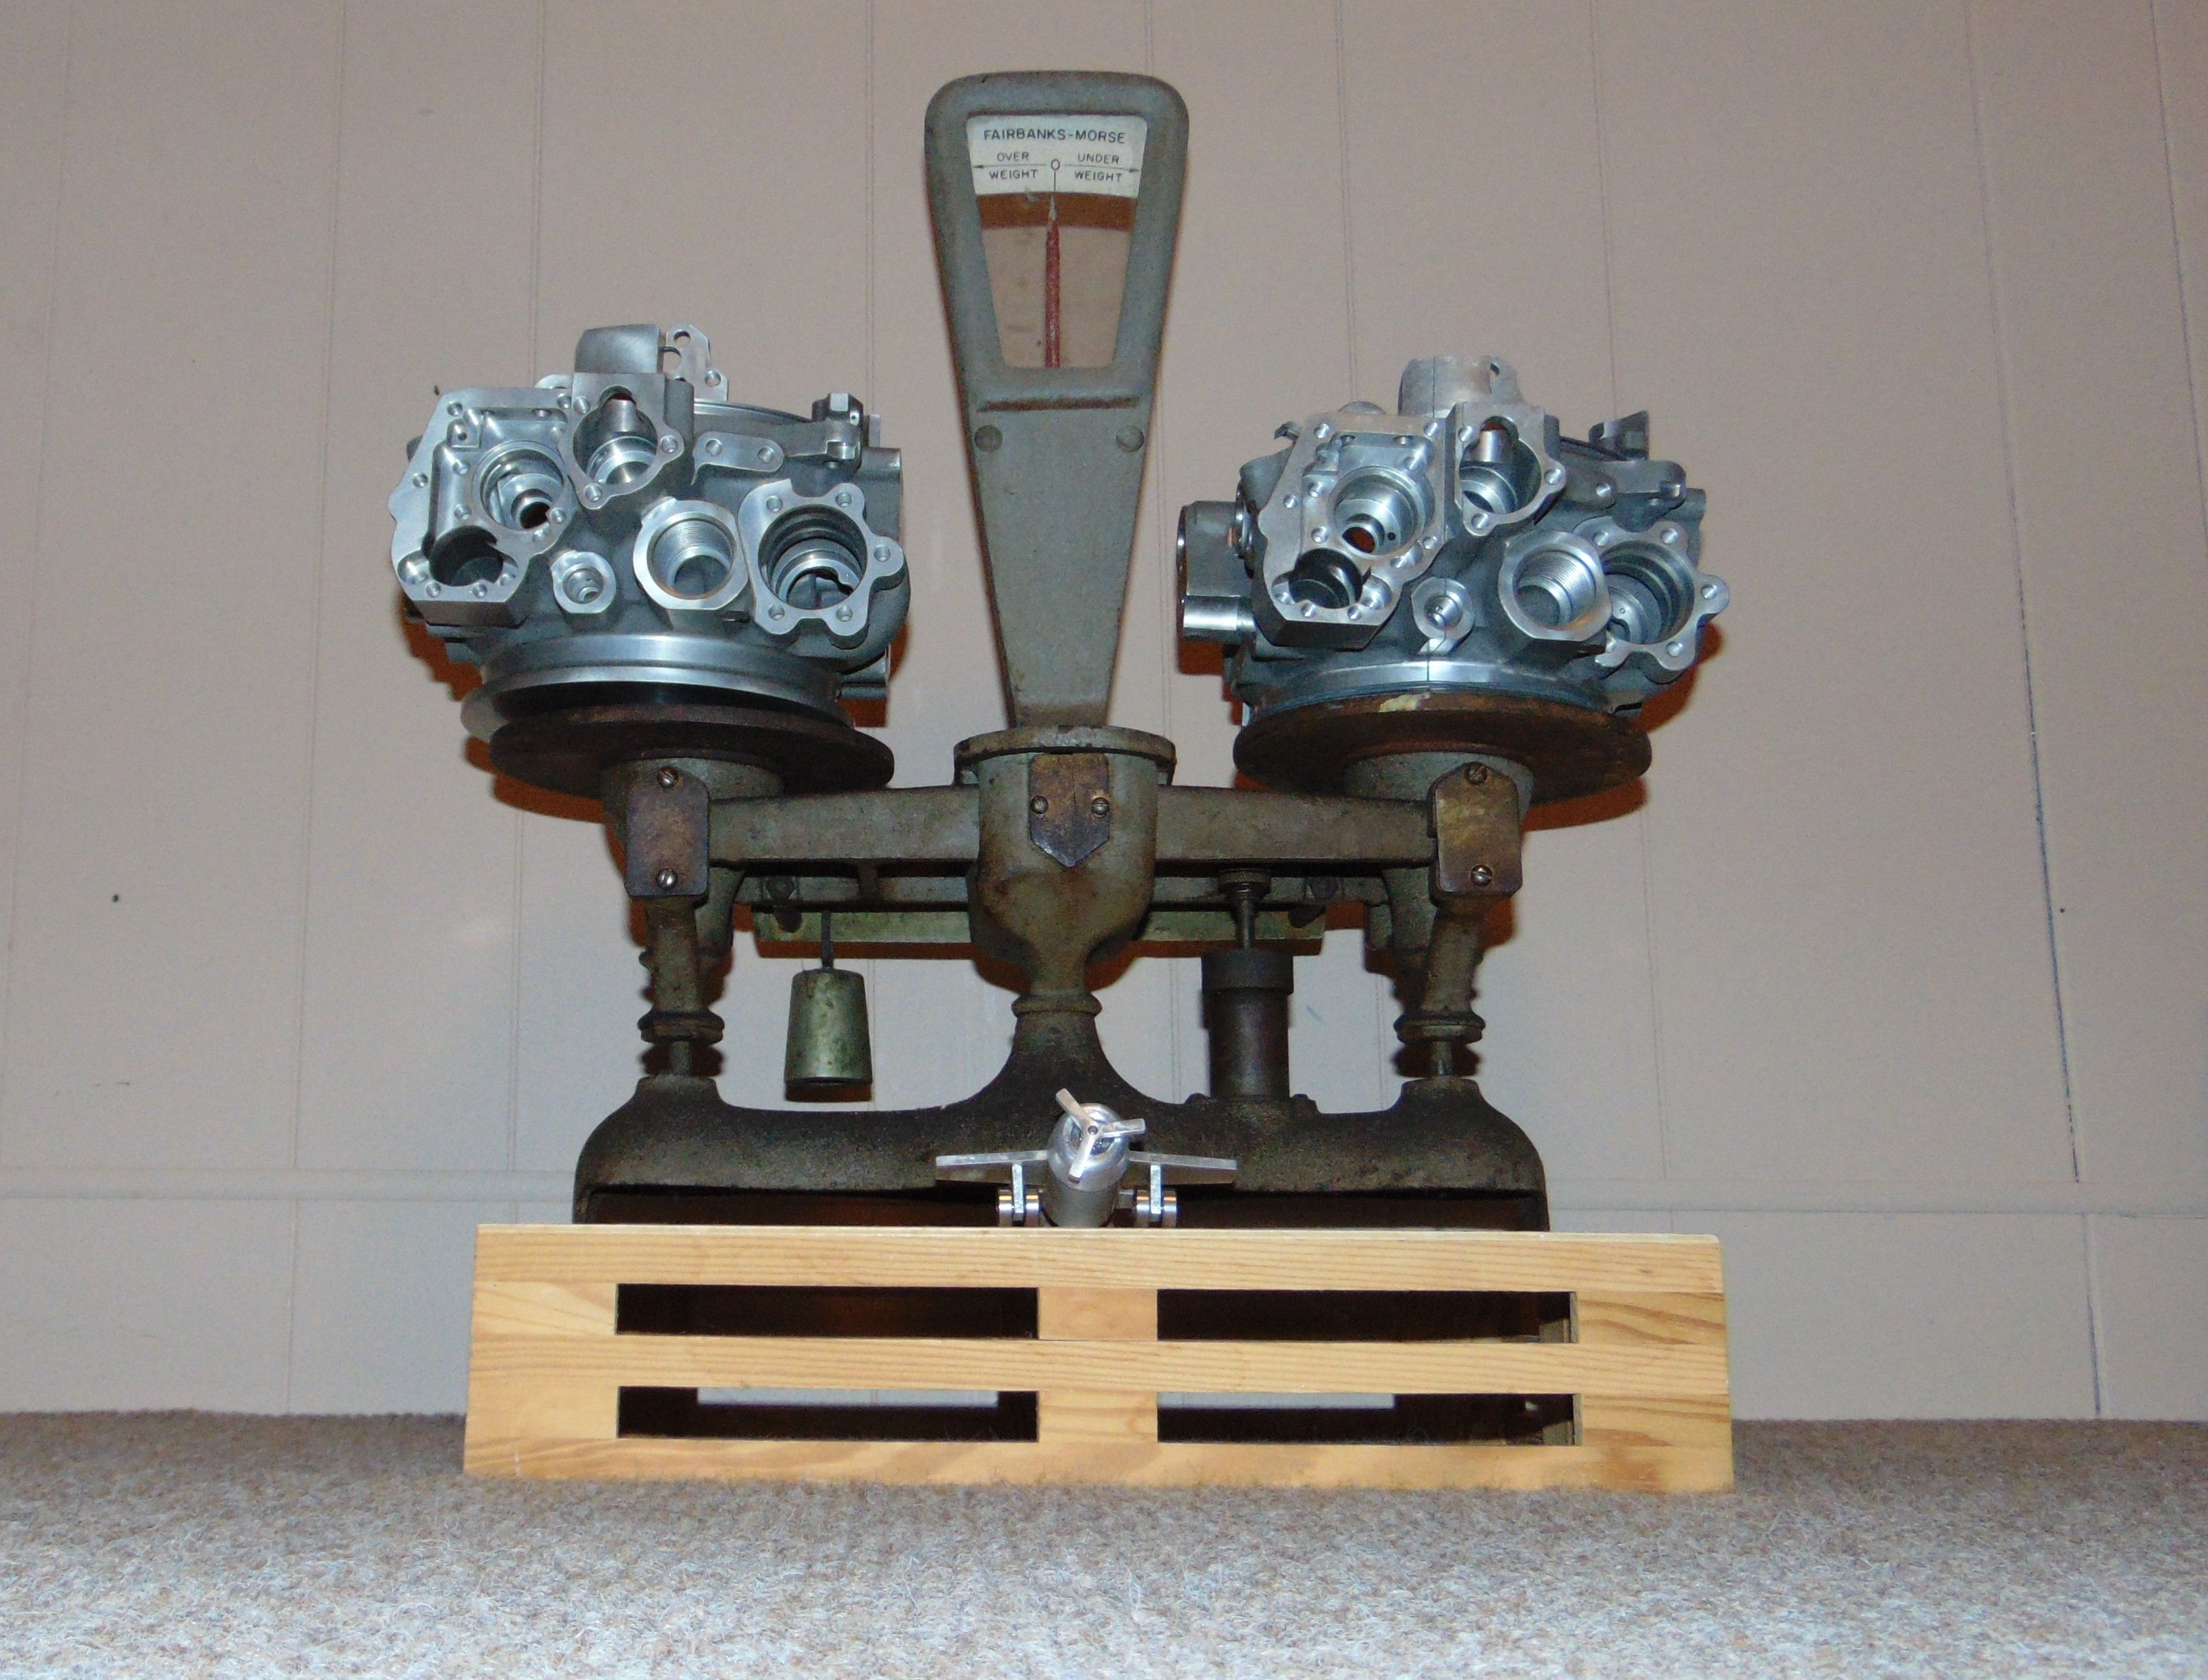 A whimsical display of a Fairbanks-Morse scale with two of